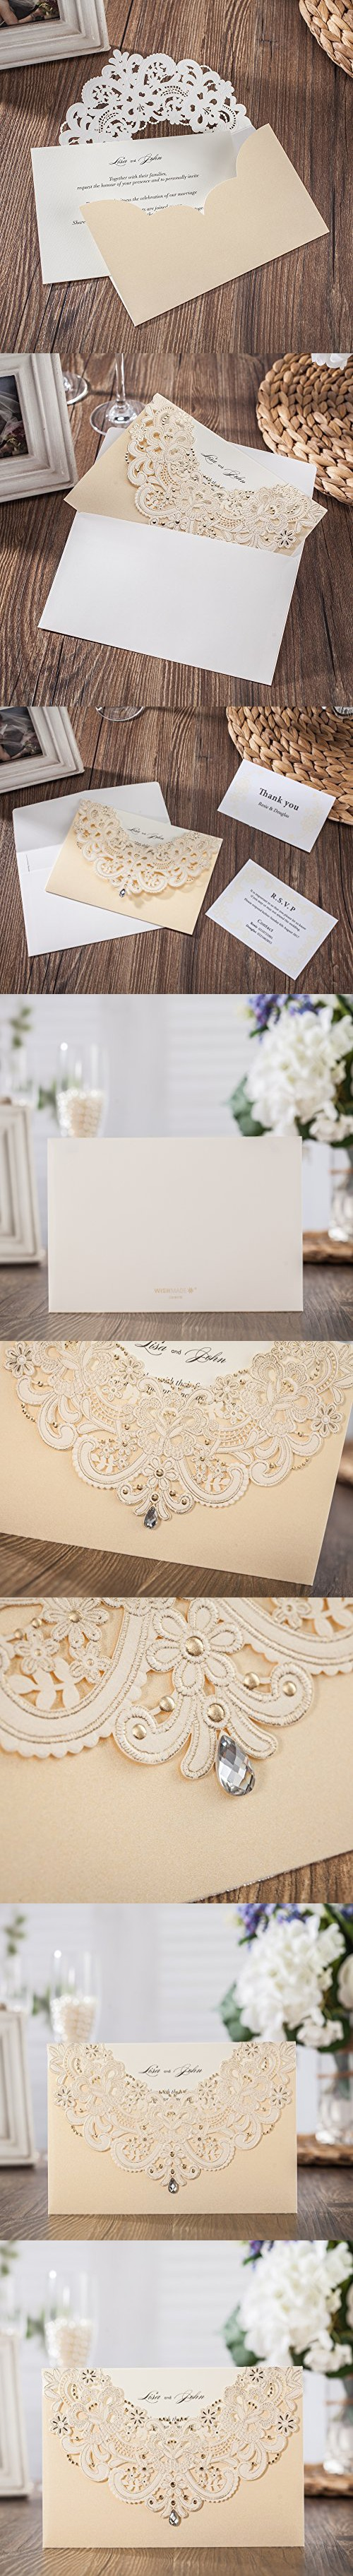 wishmade 100x gold laser cut flora lace wedding invitations kit